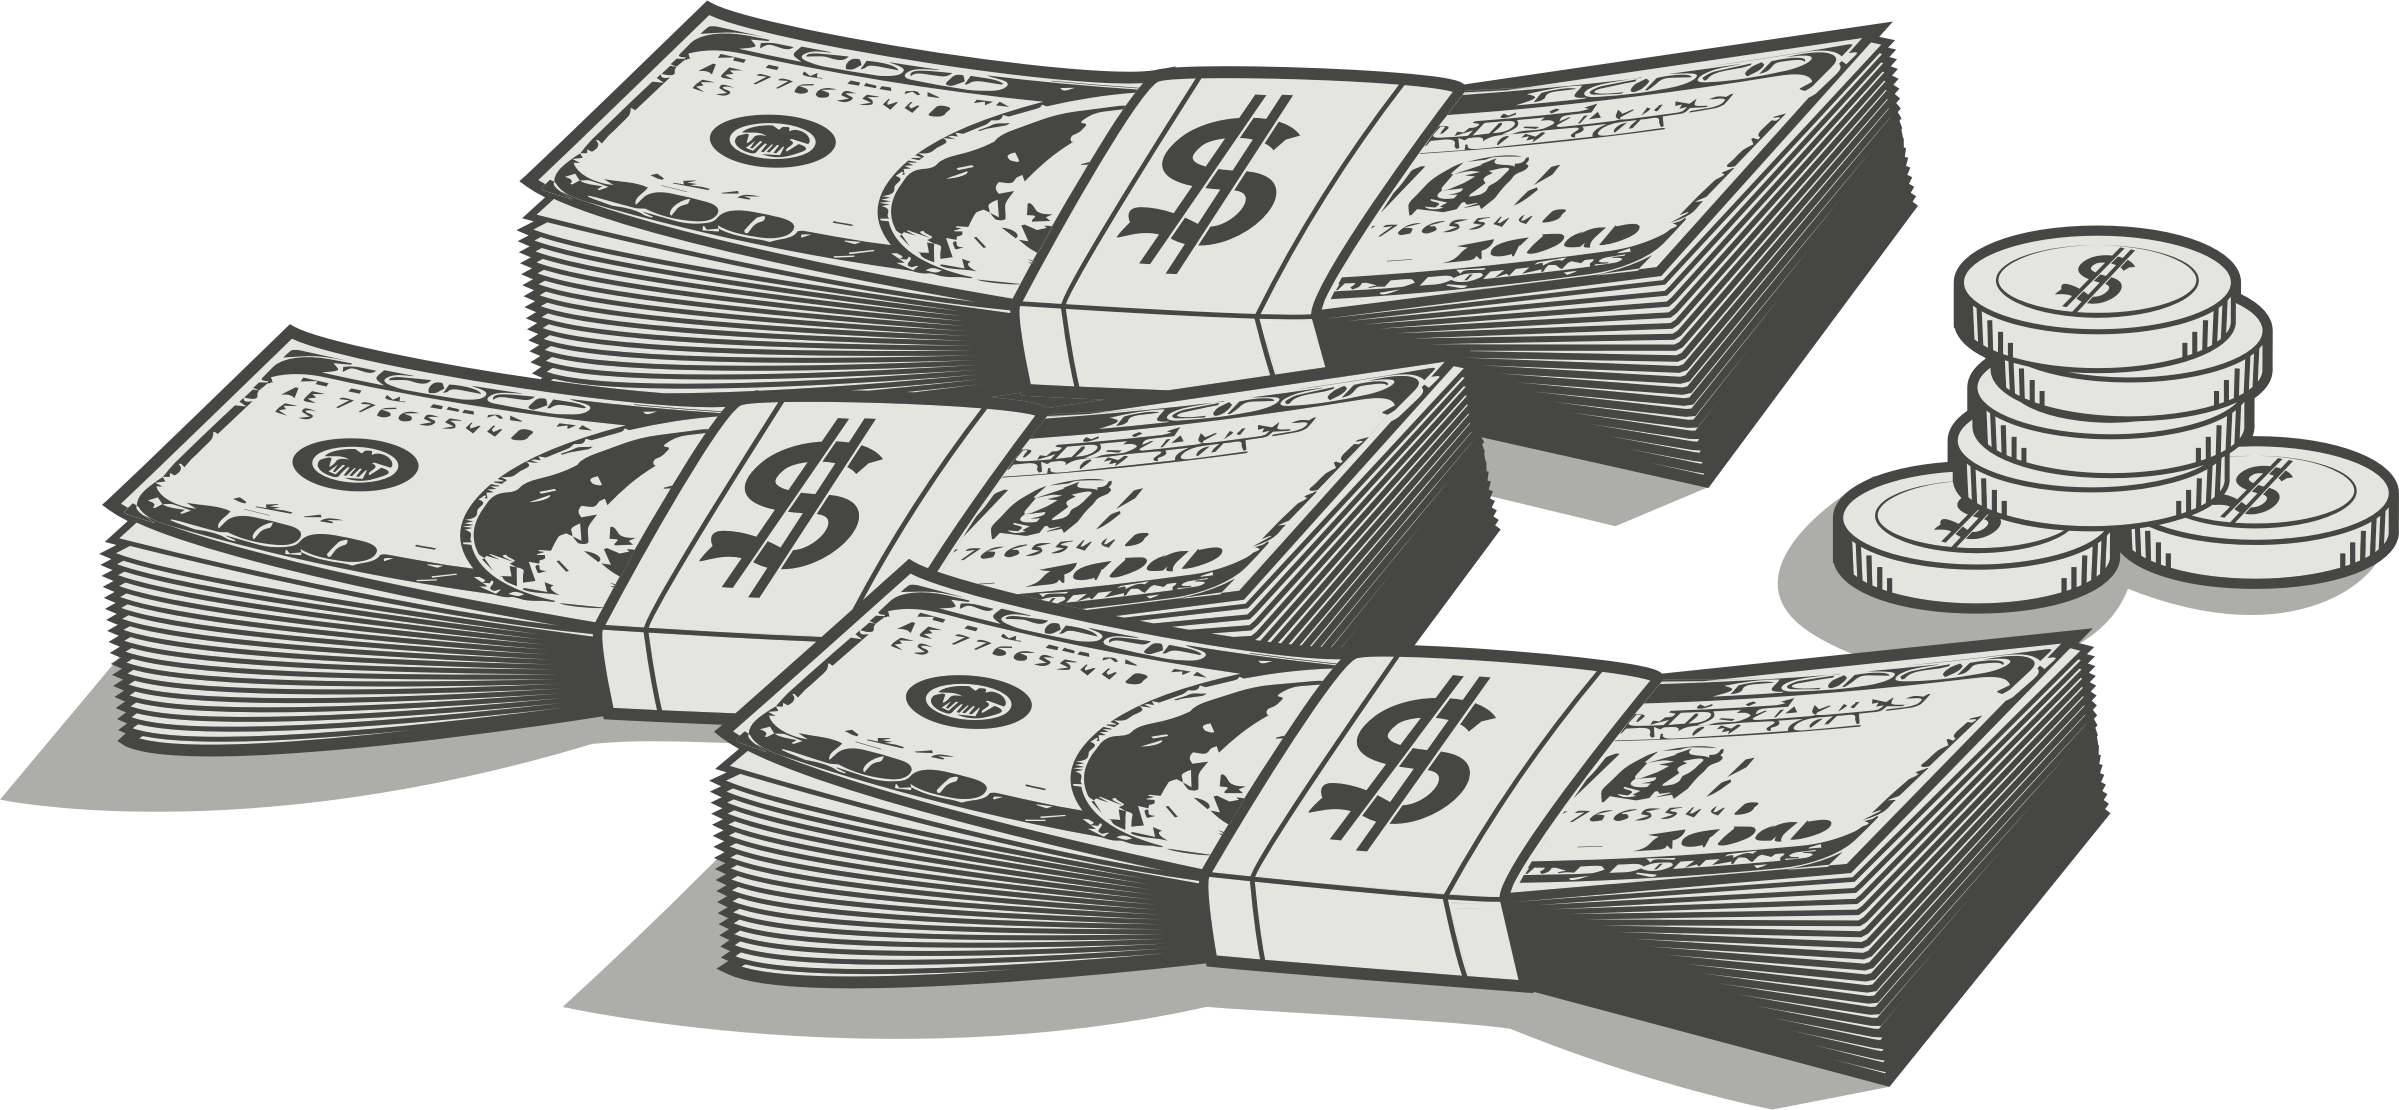 Clipart of money bills graphic black and white stock Clipart - Money graphic black and white stock